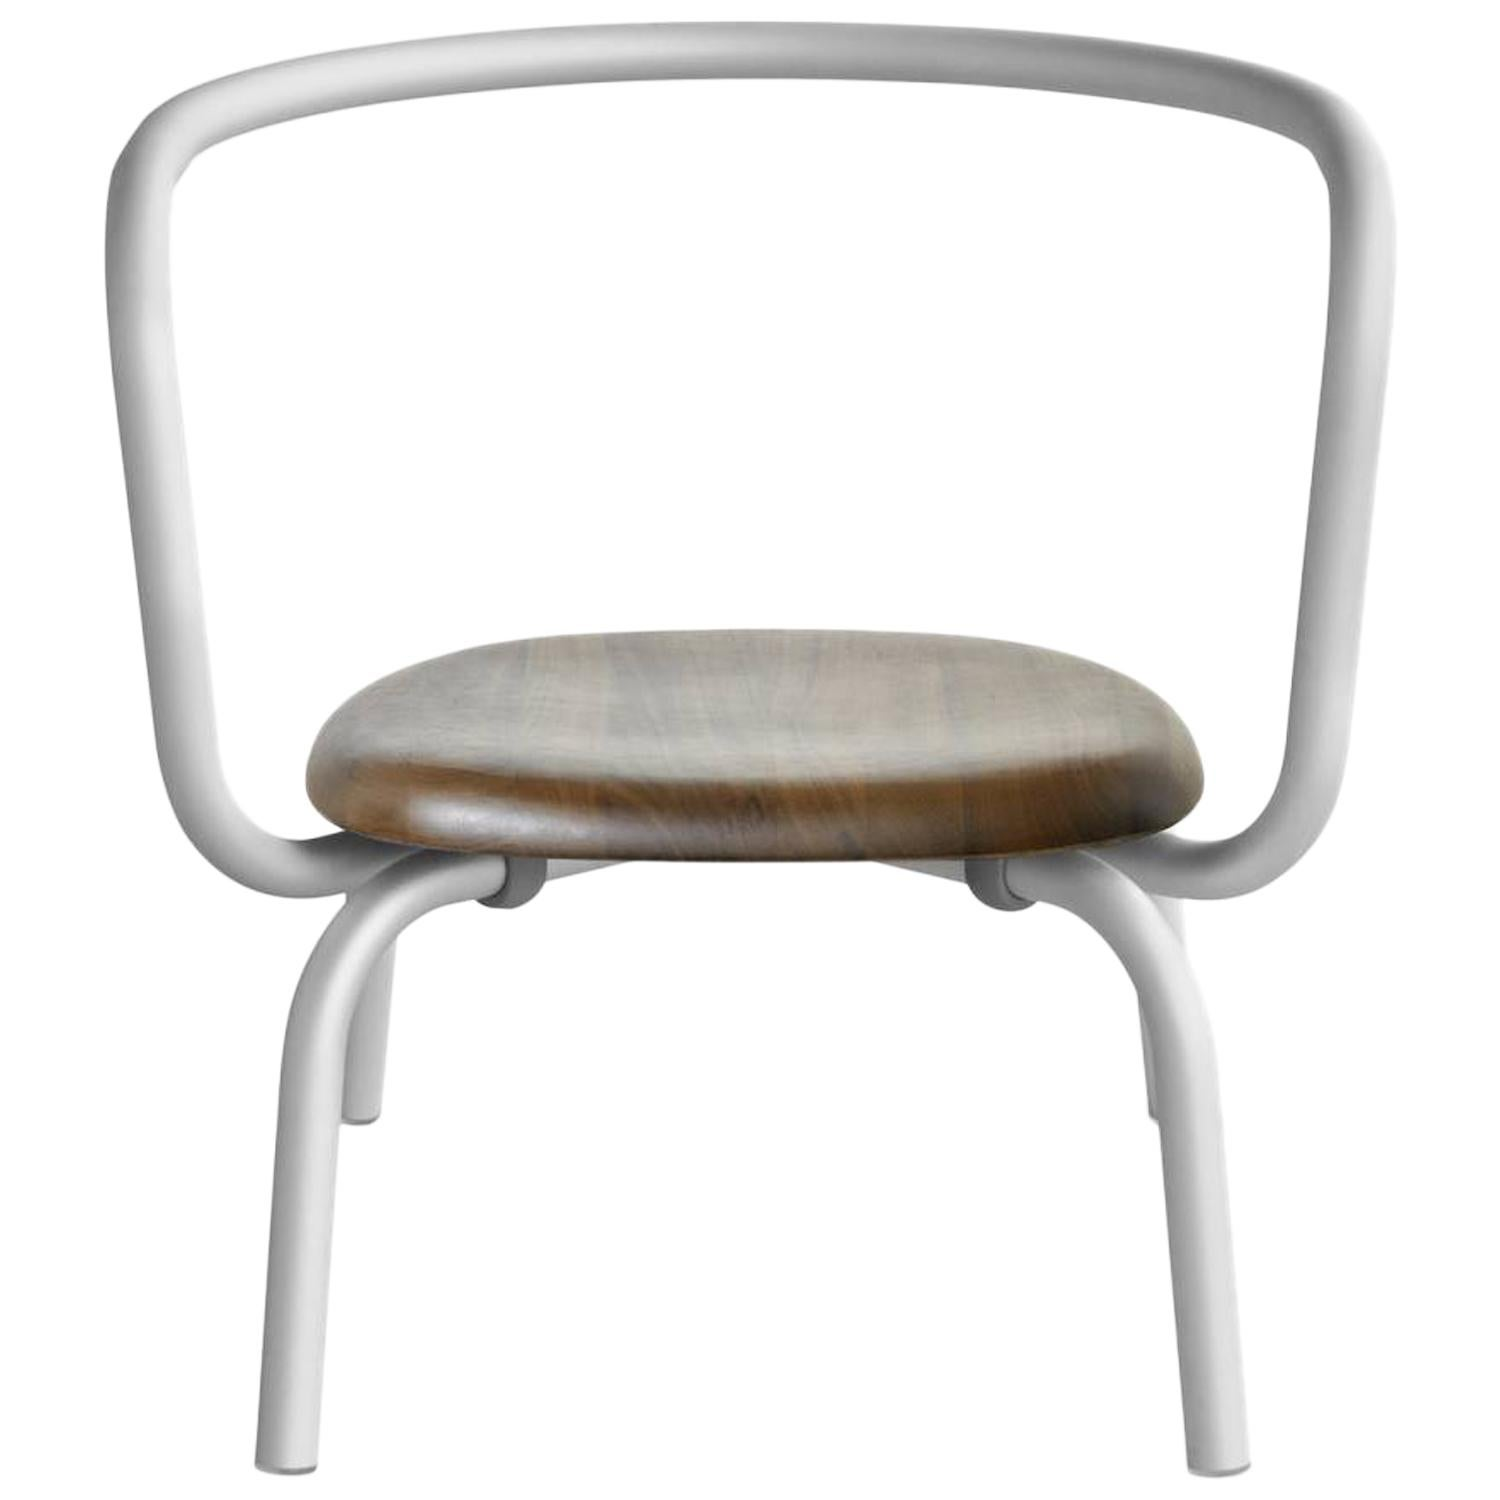 Emeco Parrish Lounge Chair in Aluminum with Walnut Seat by Konstantin Grcic